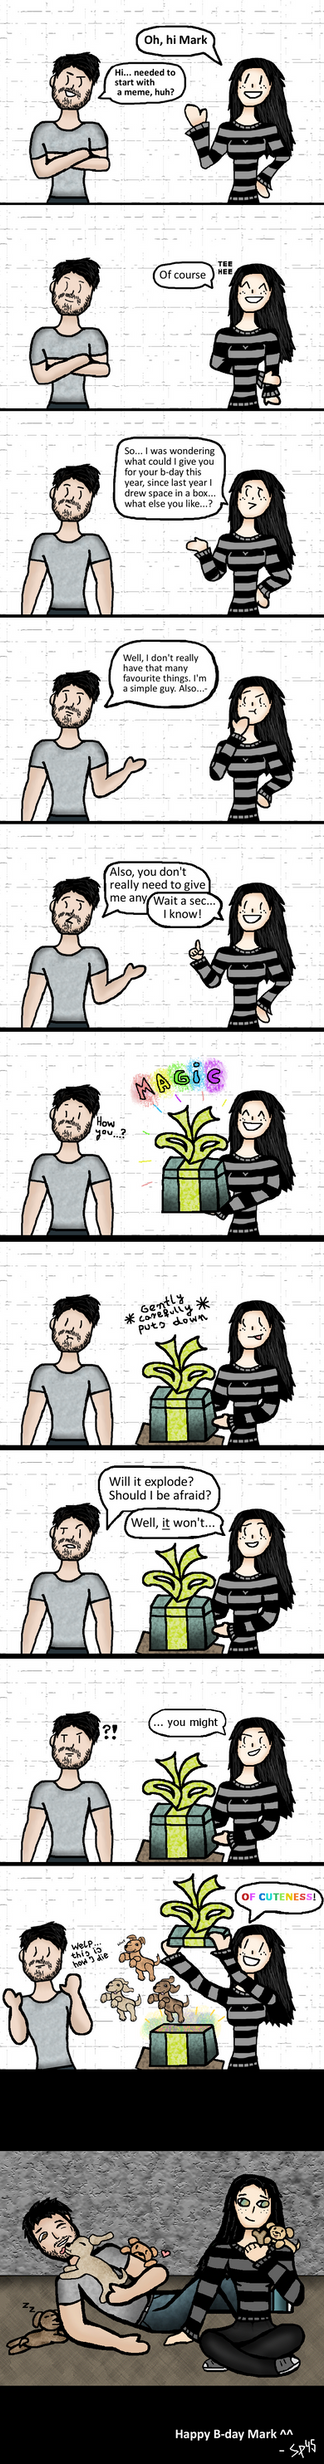 Happy B-day Mark ^^  I 2018 comics I by SpookyMuffin4545